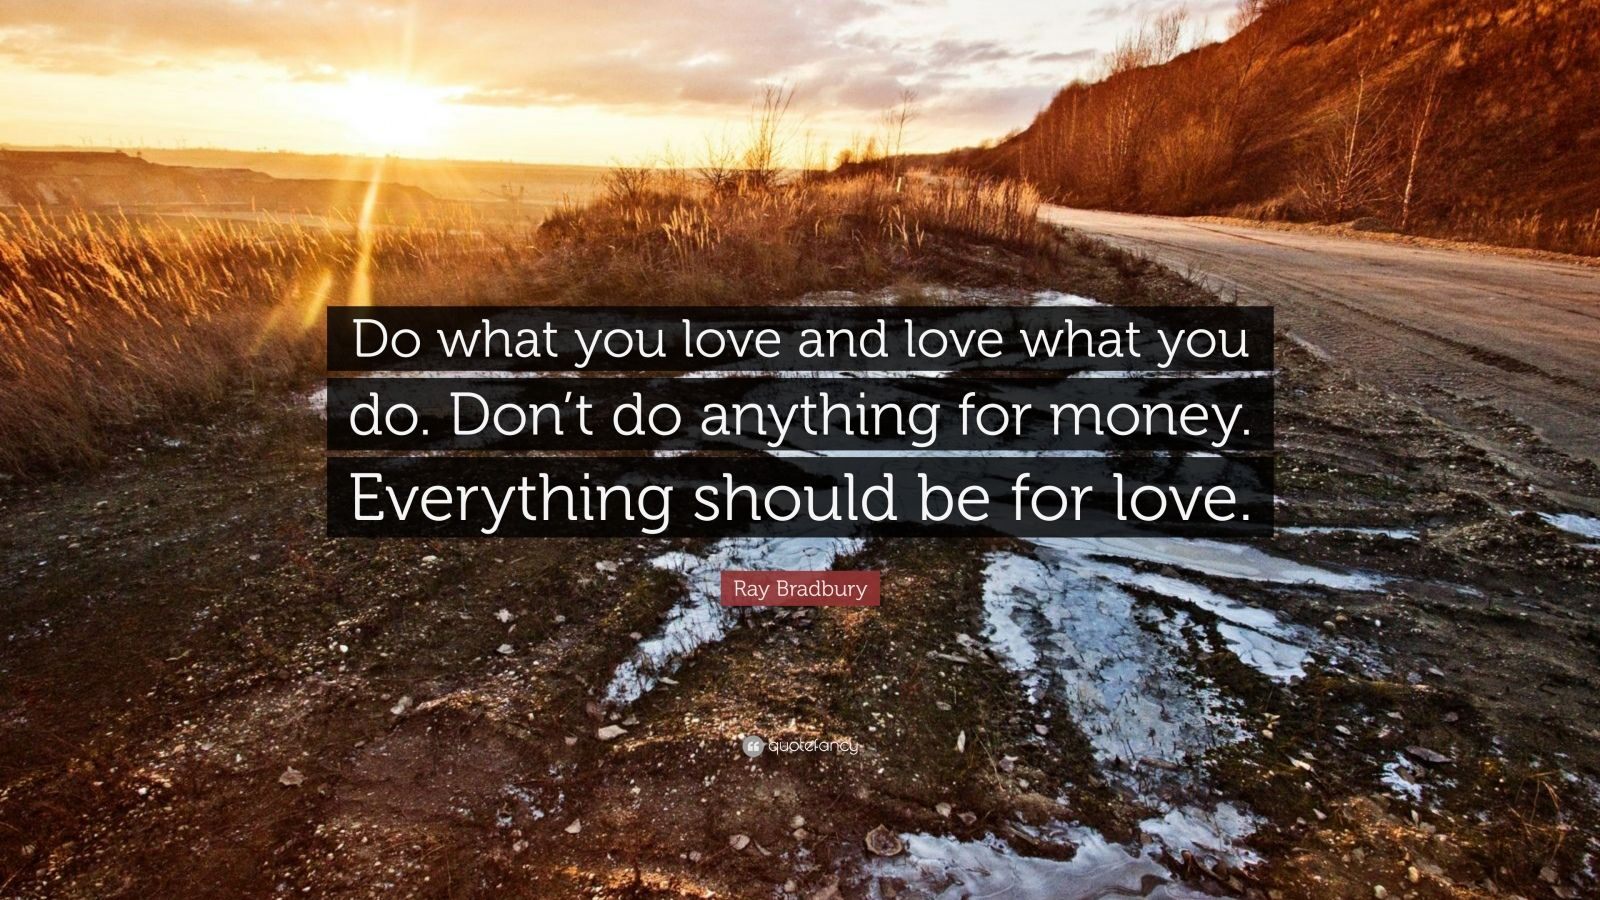 """Ray Bradbury Quote: """"Do what you love and love what you do. Don't do anything for money. Everything should be for love."""""""